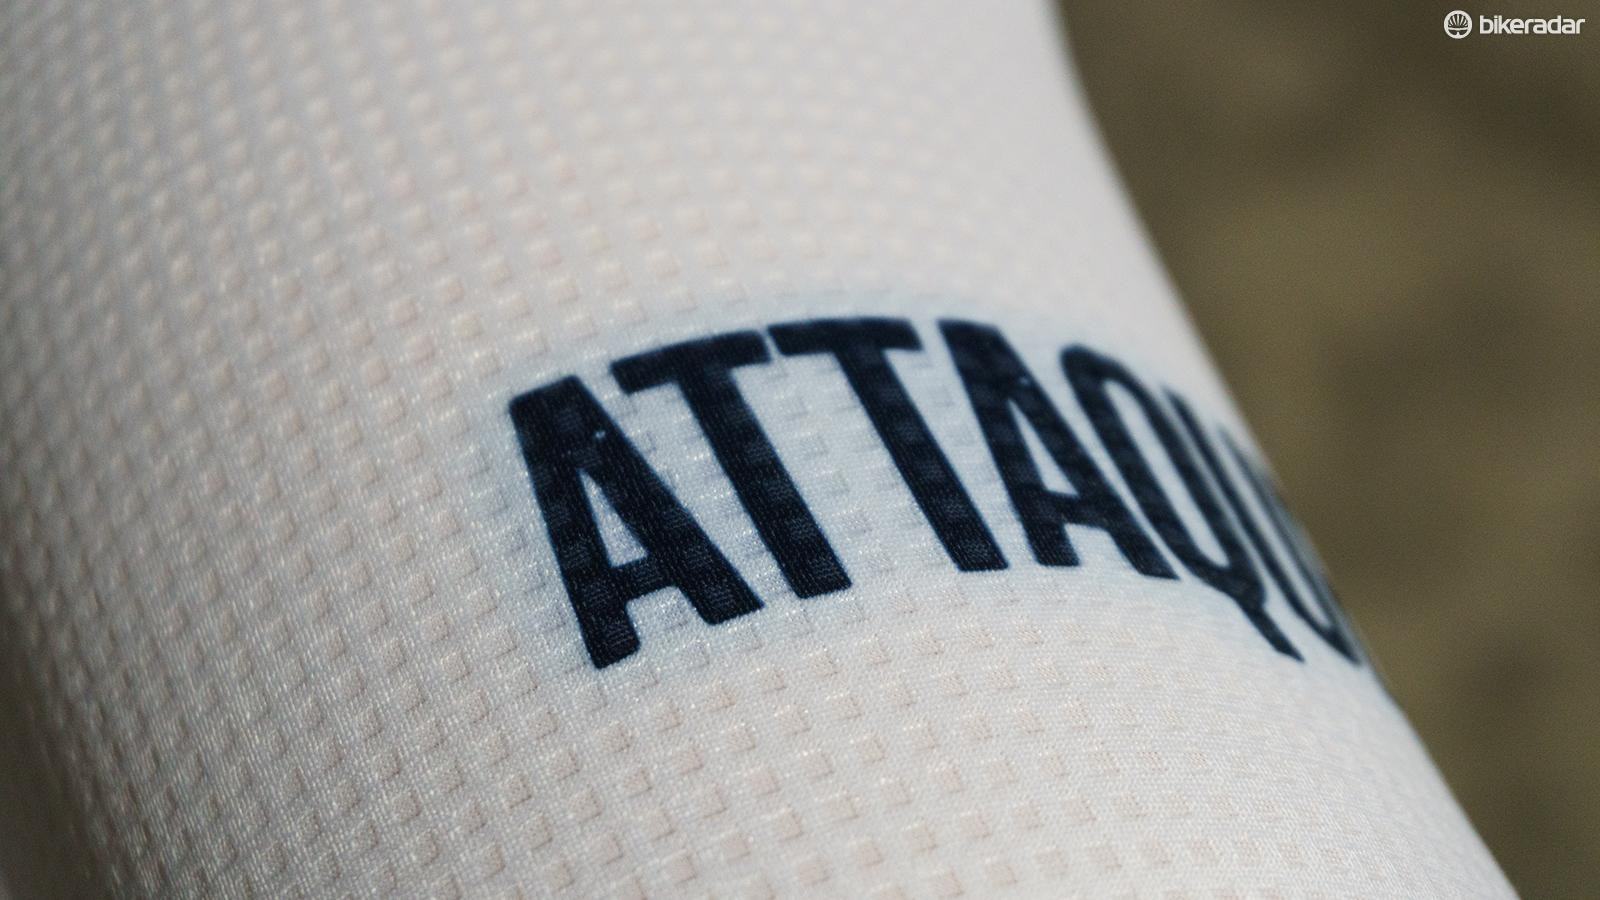 There looked to be a slight bleeding of colour around some of the details on the jersey